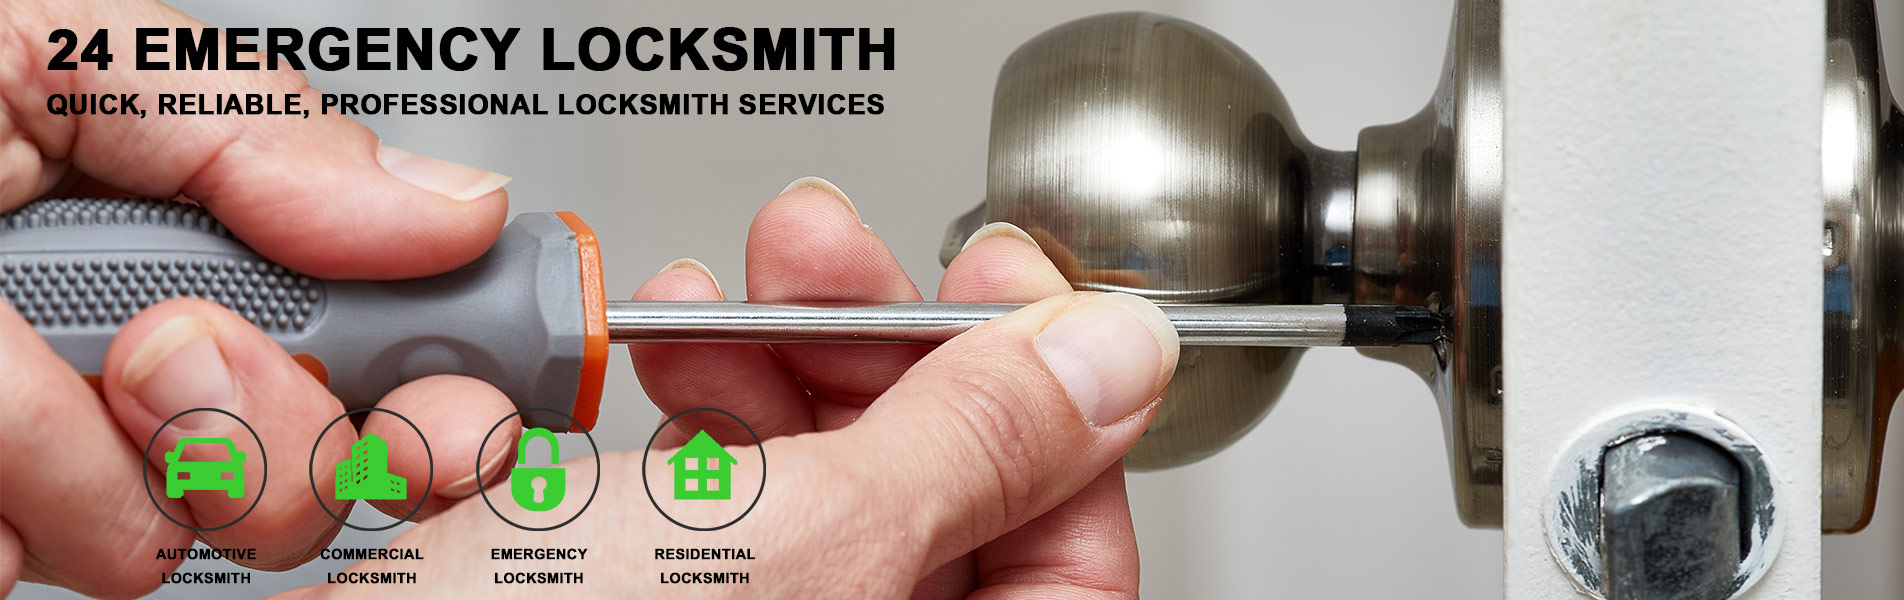 residential locksmith. Baltimore Express Locksmith Baltimore, MD 410-246-6584 Residential